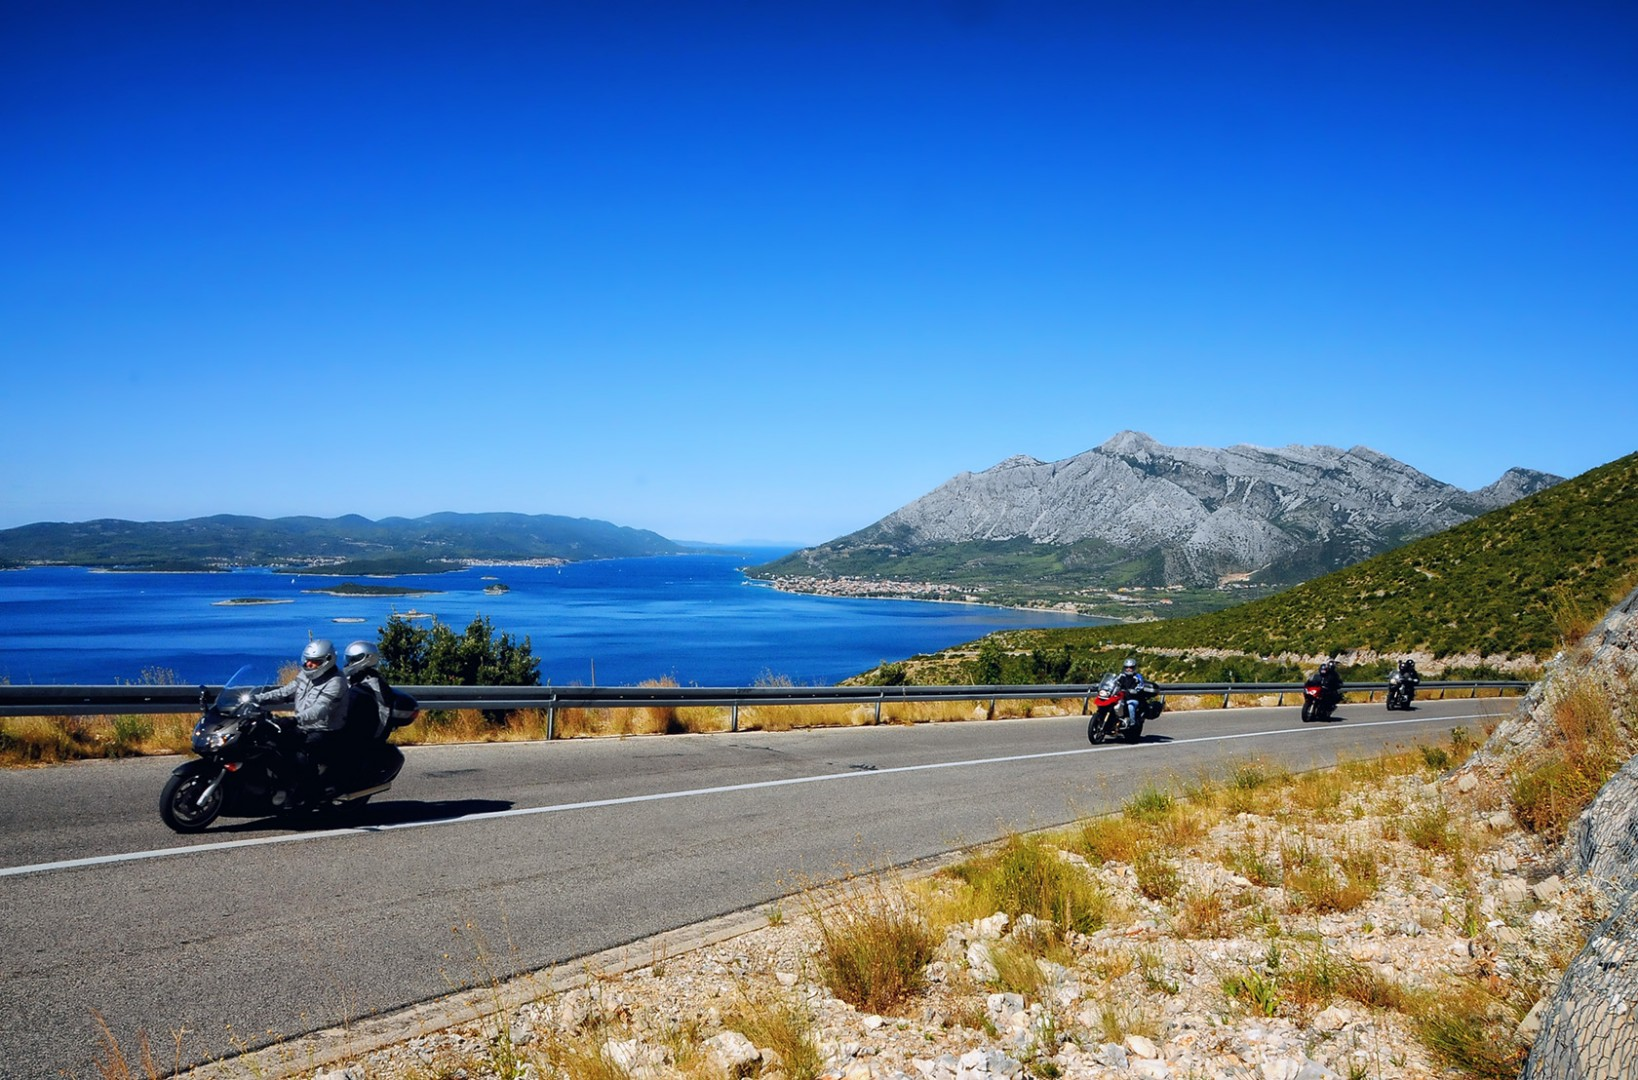 Adriatic Riviera Motorcycle Tour